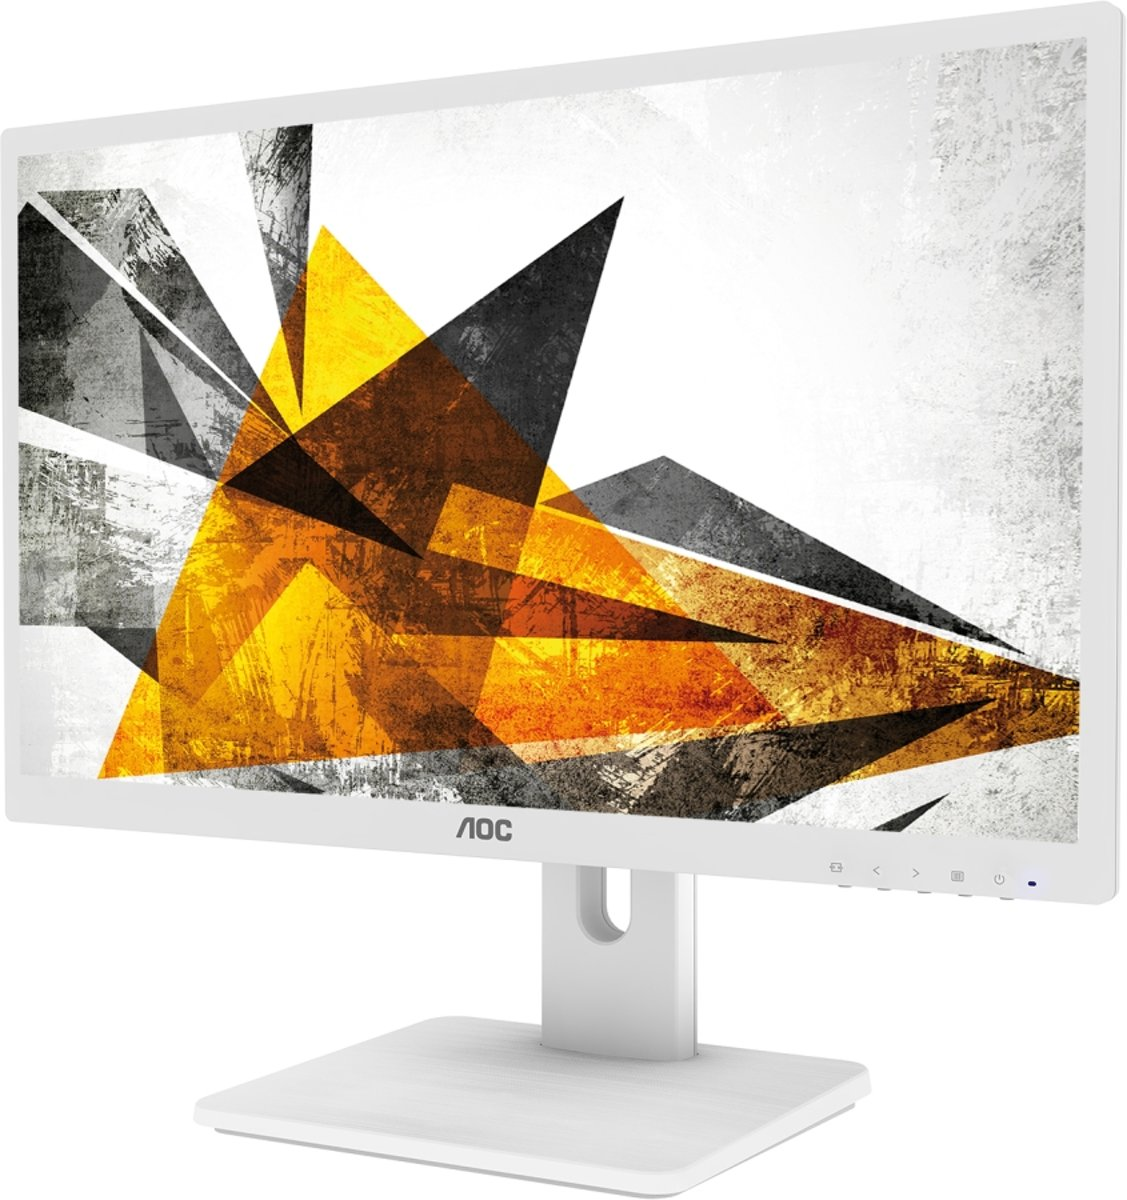 I2475PXQU/GR computer monitor 60,5 cm (23.8) Full HD LED Flat Wit